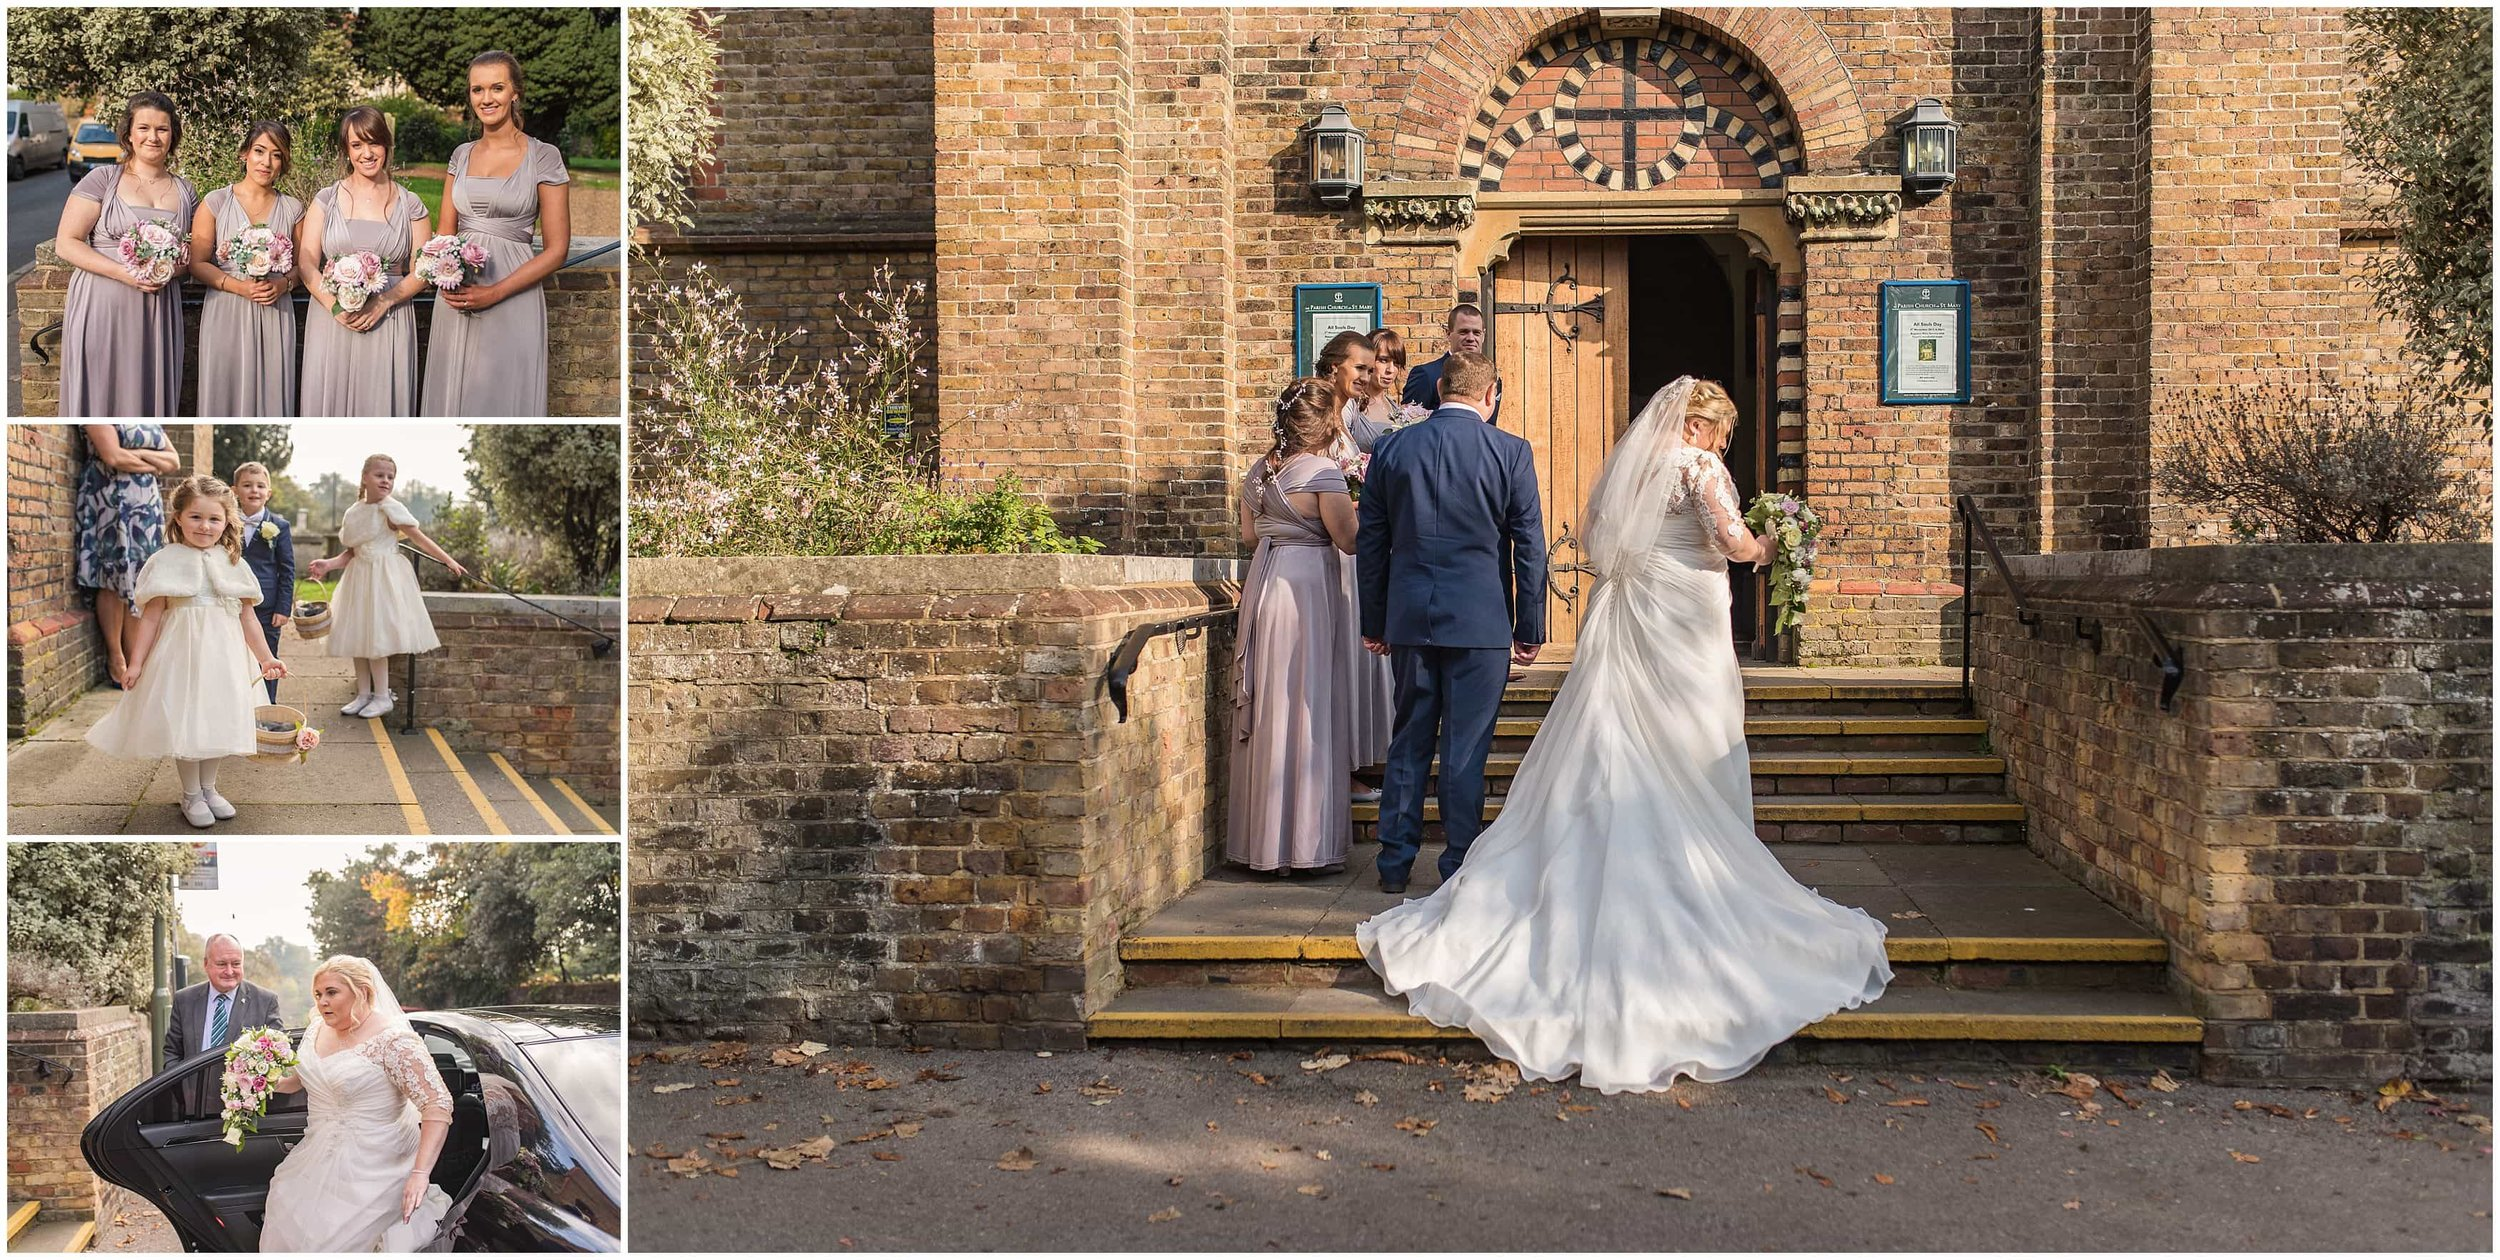 Bride and Bridesmaids arriving at St Mary's church in Sunbury for Autumn wedding ceremony